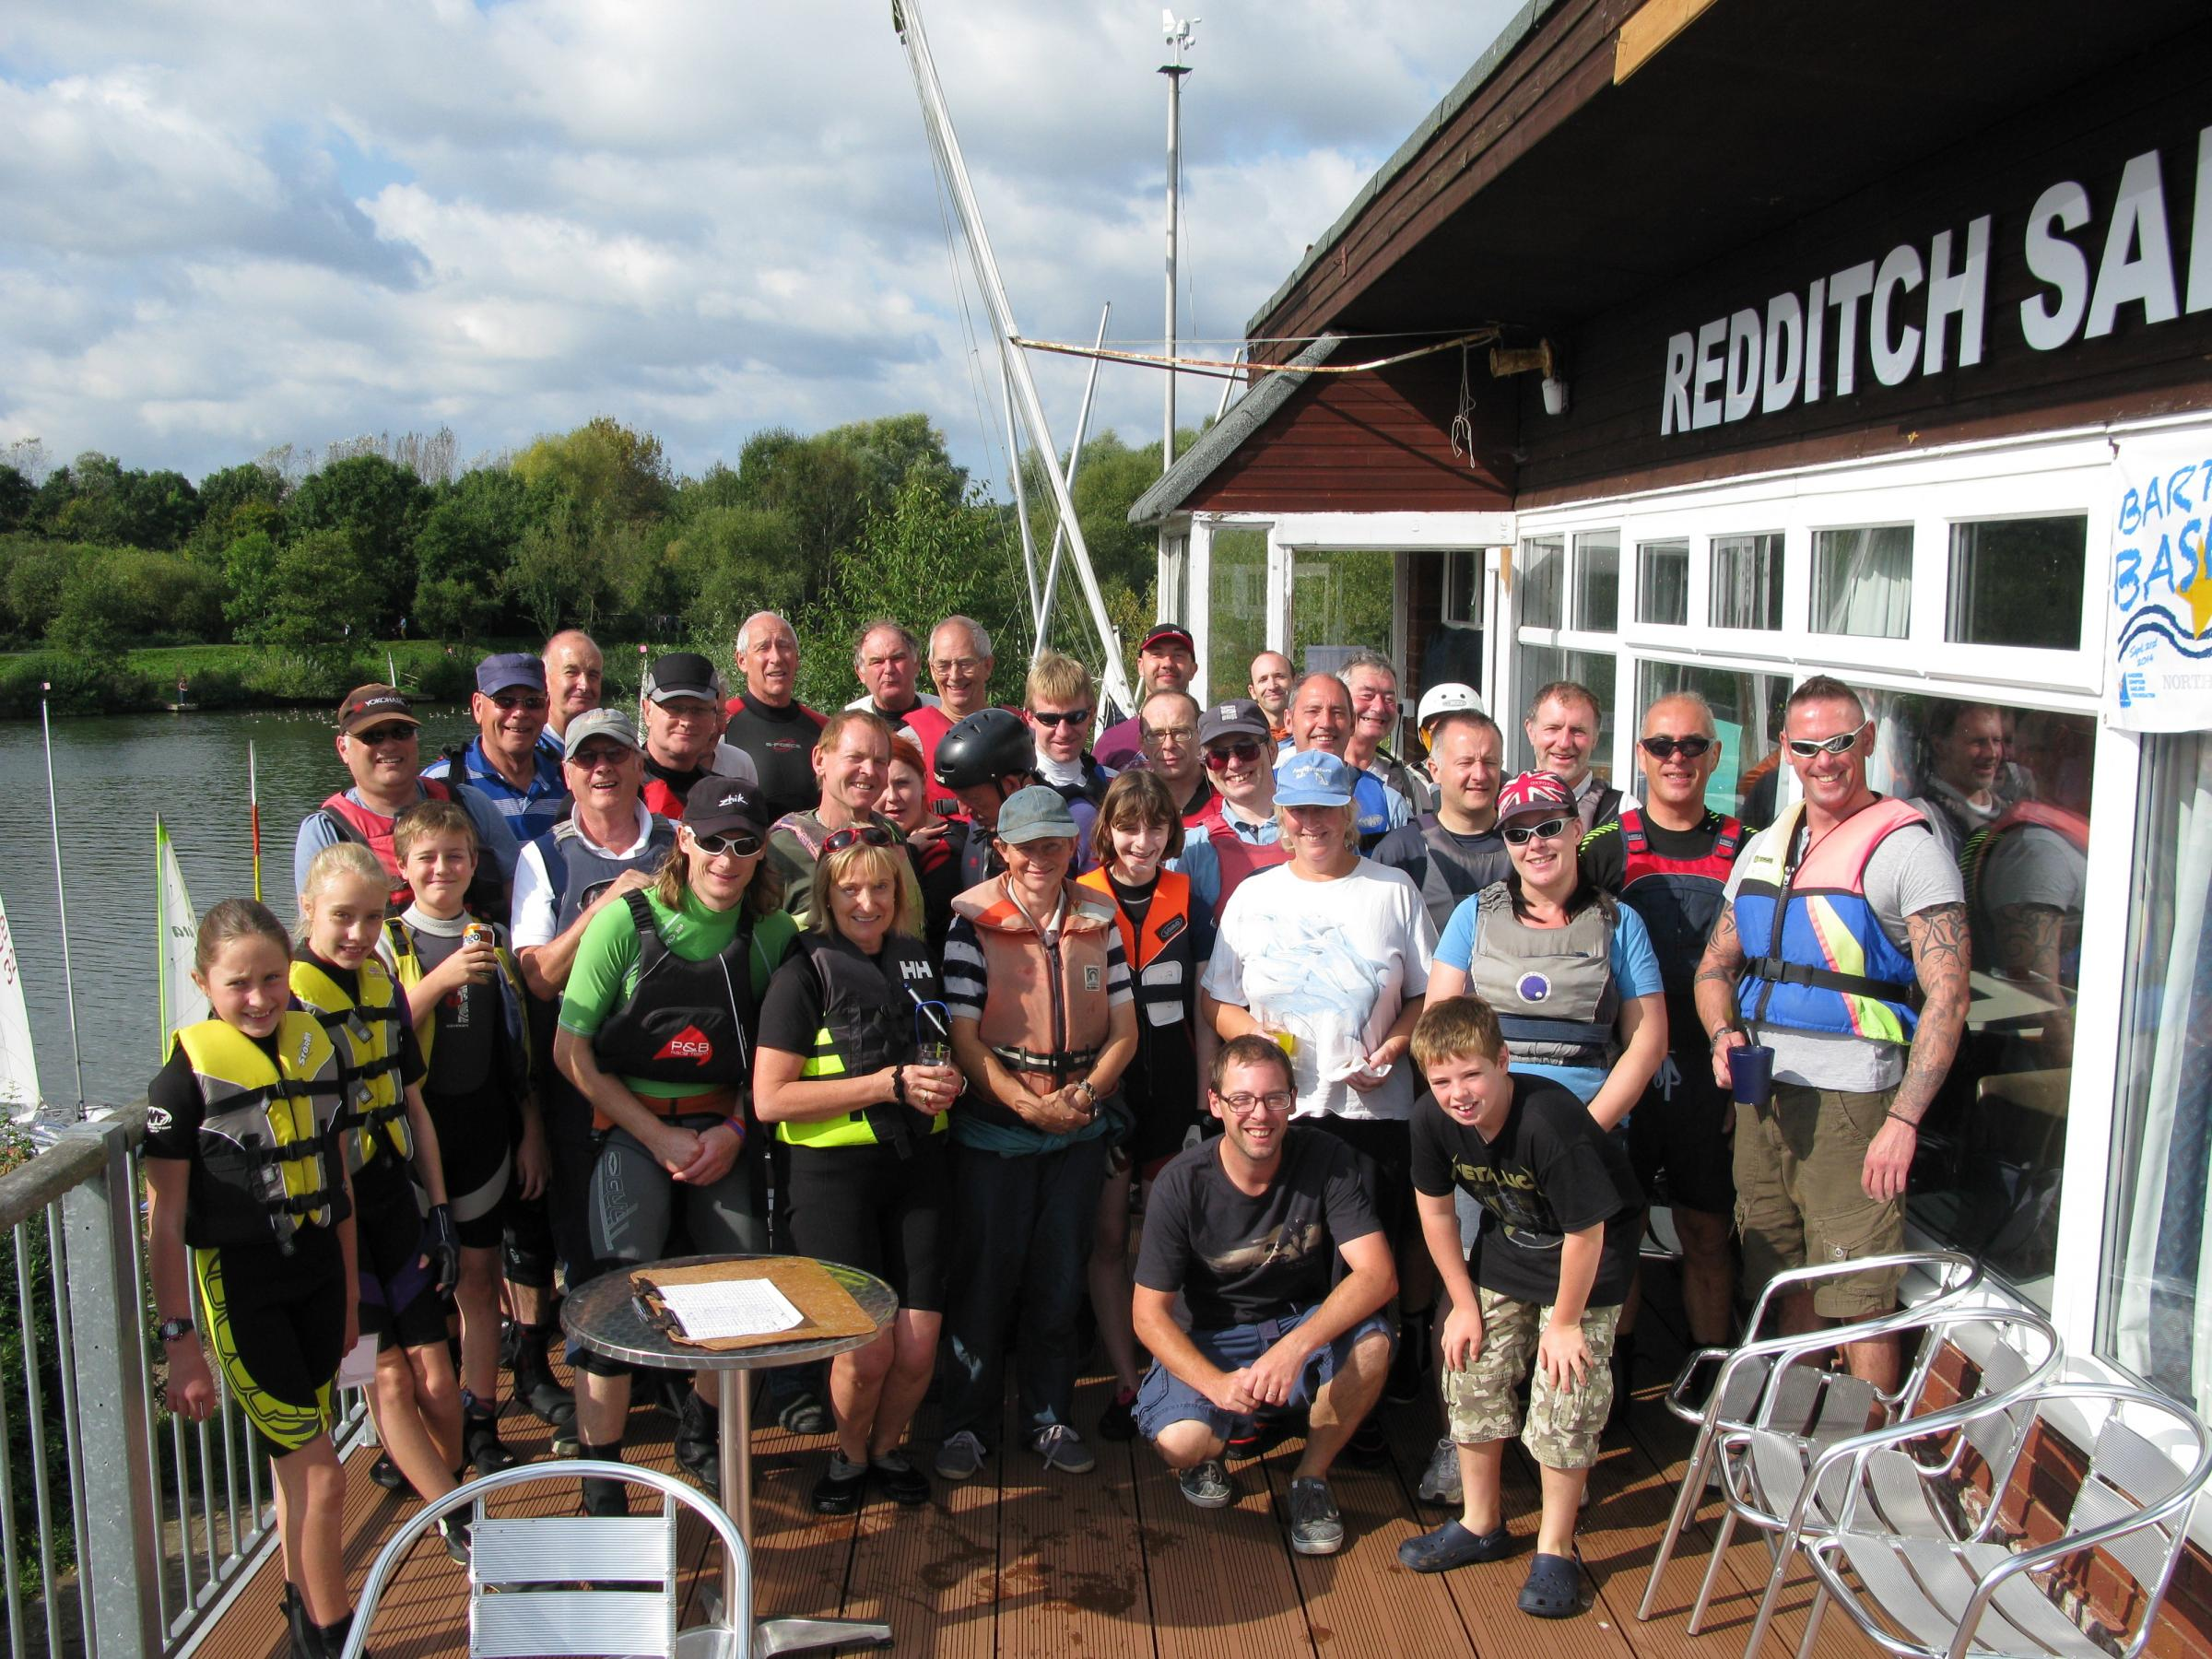 Members of Redditch Sailing Club recently took part in Bart's Bash, a sailing race and fundraising event.